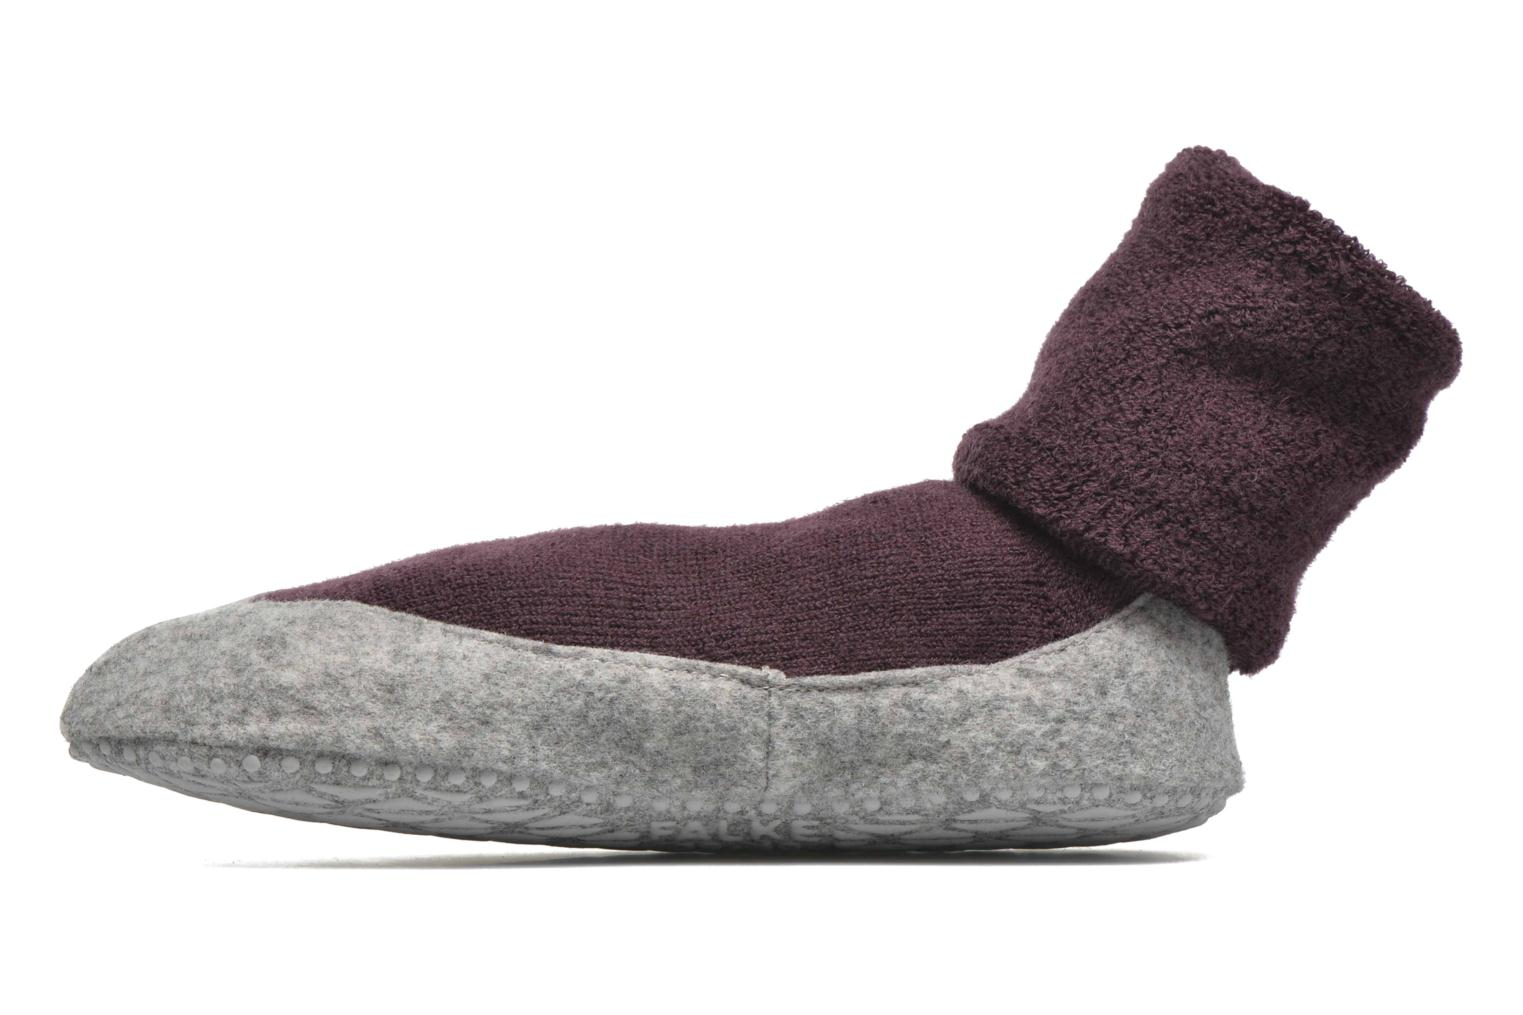 Chaussons-chaussettes Cosyshoe 8706